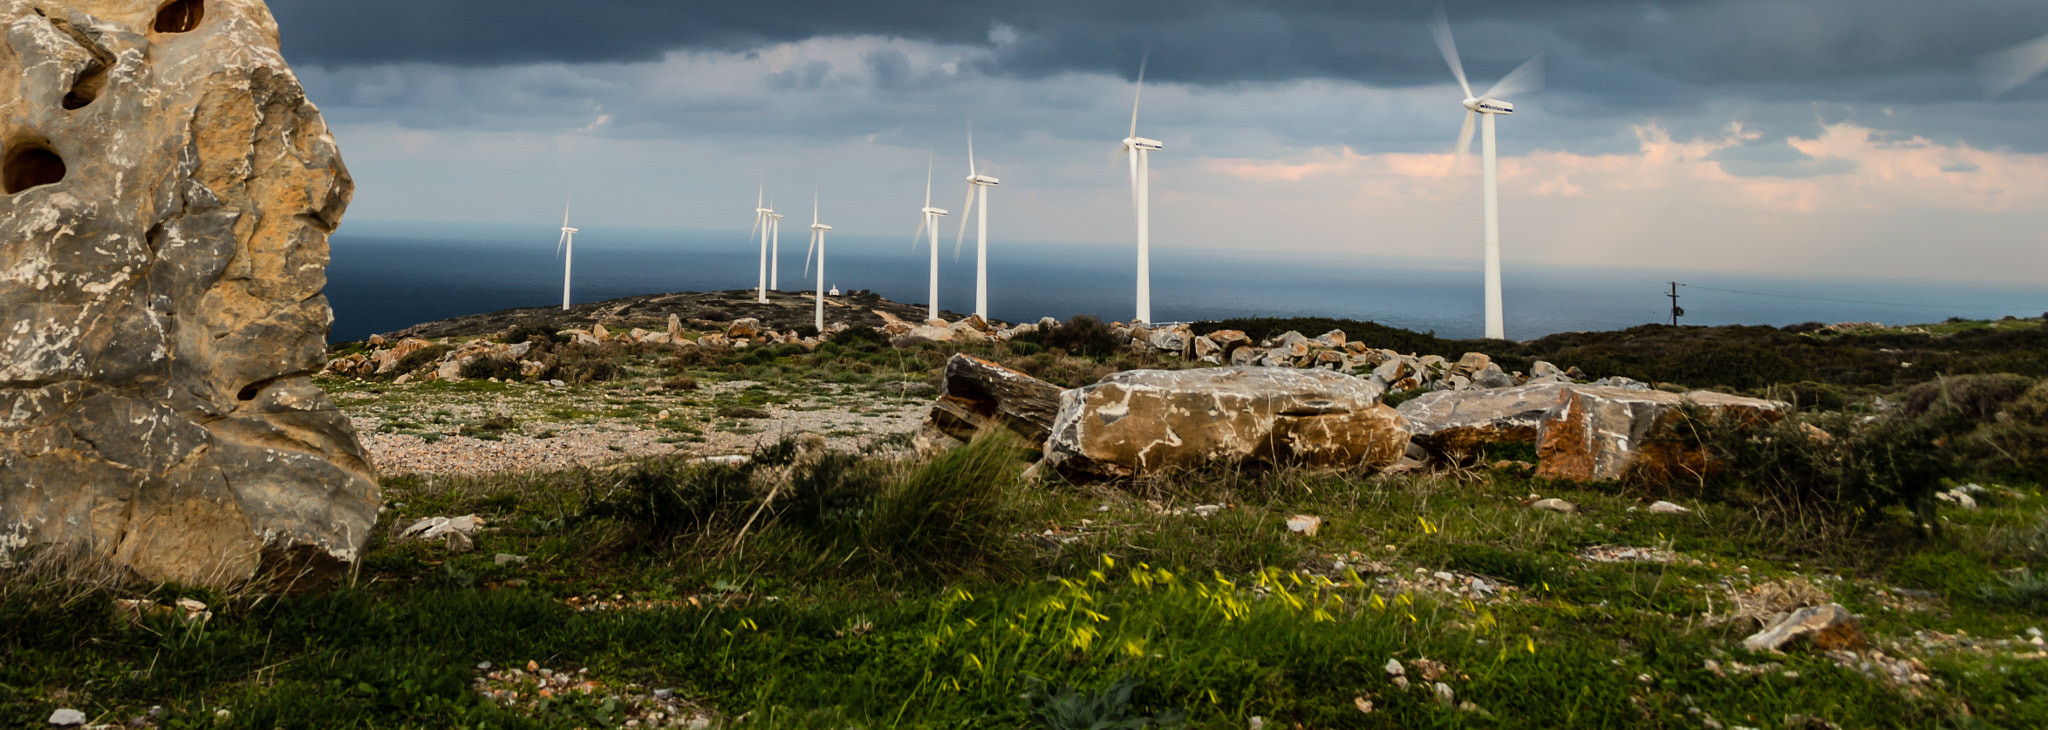 Photograph The Electric Park by Michael Papantonakis on 500px